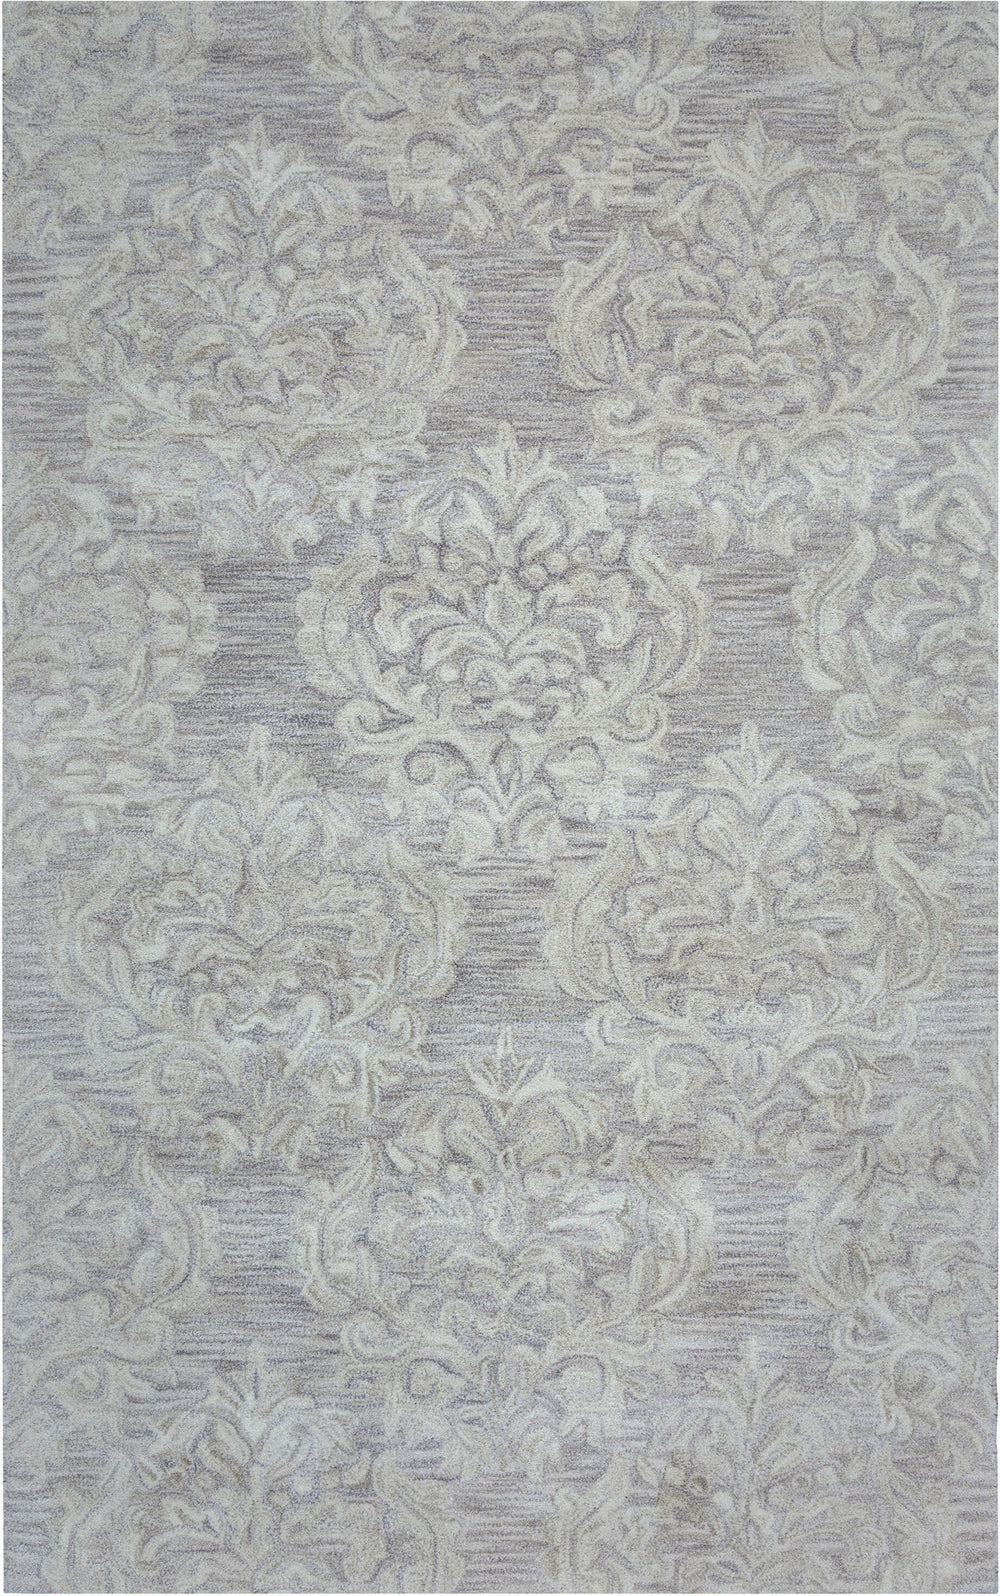 Rizzy Marianna Fields MF9589 Area Rug